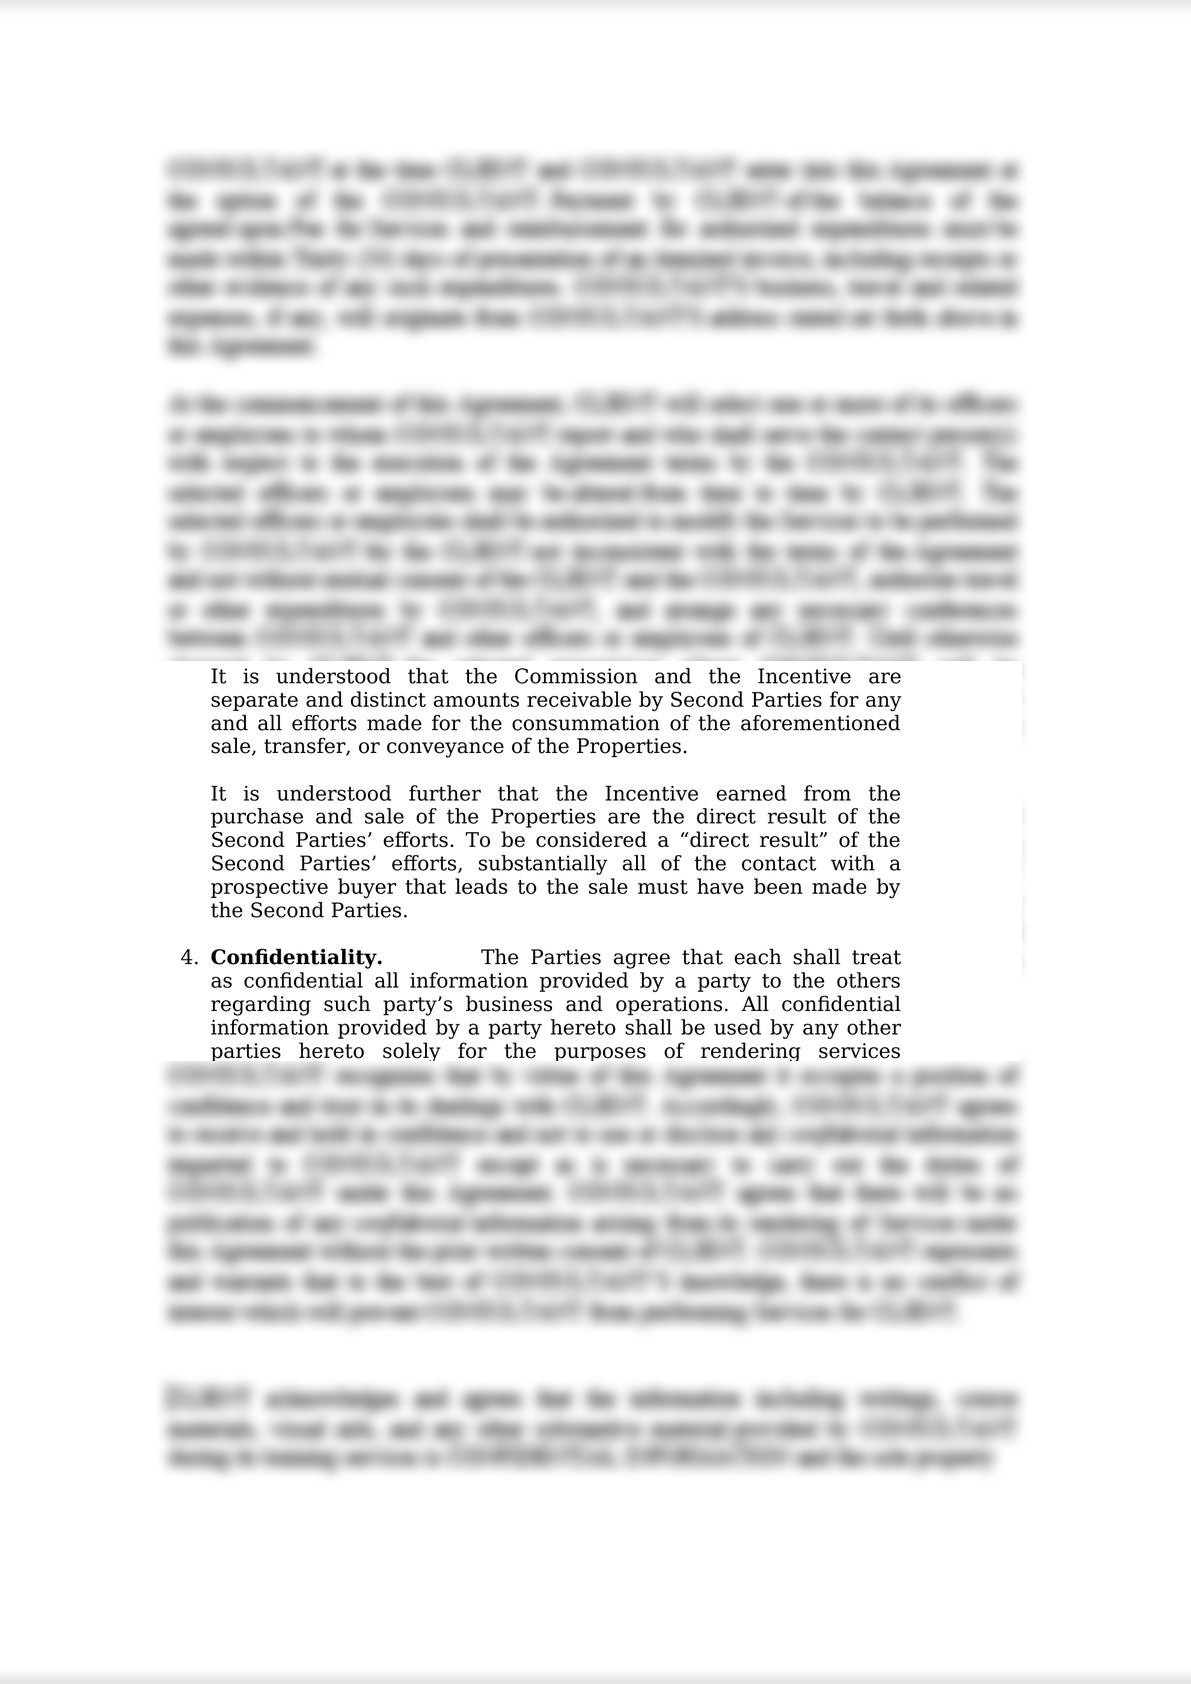 Memorandum of Agreement - Broker's Compensation and Profit-Sharing Scheme-0